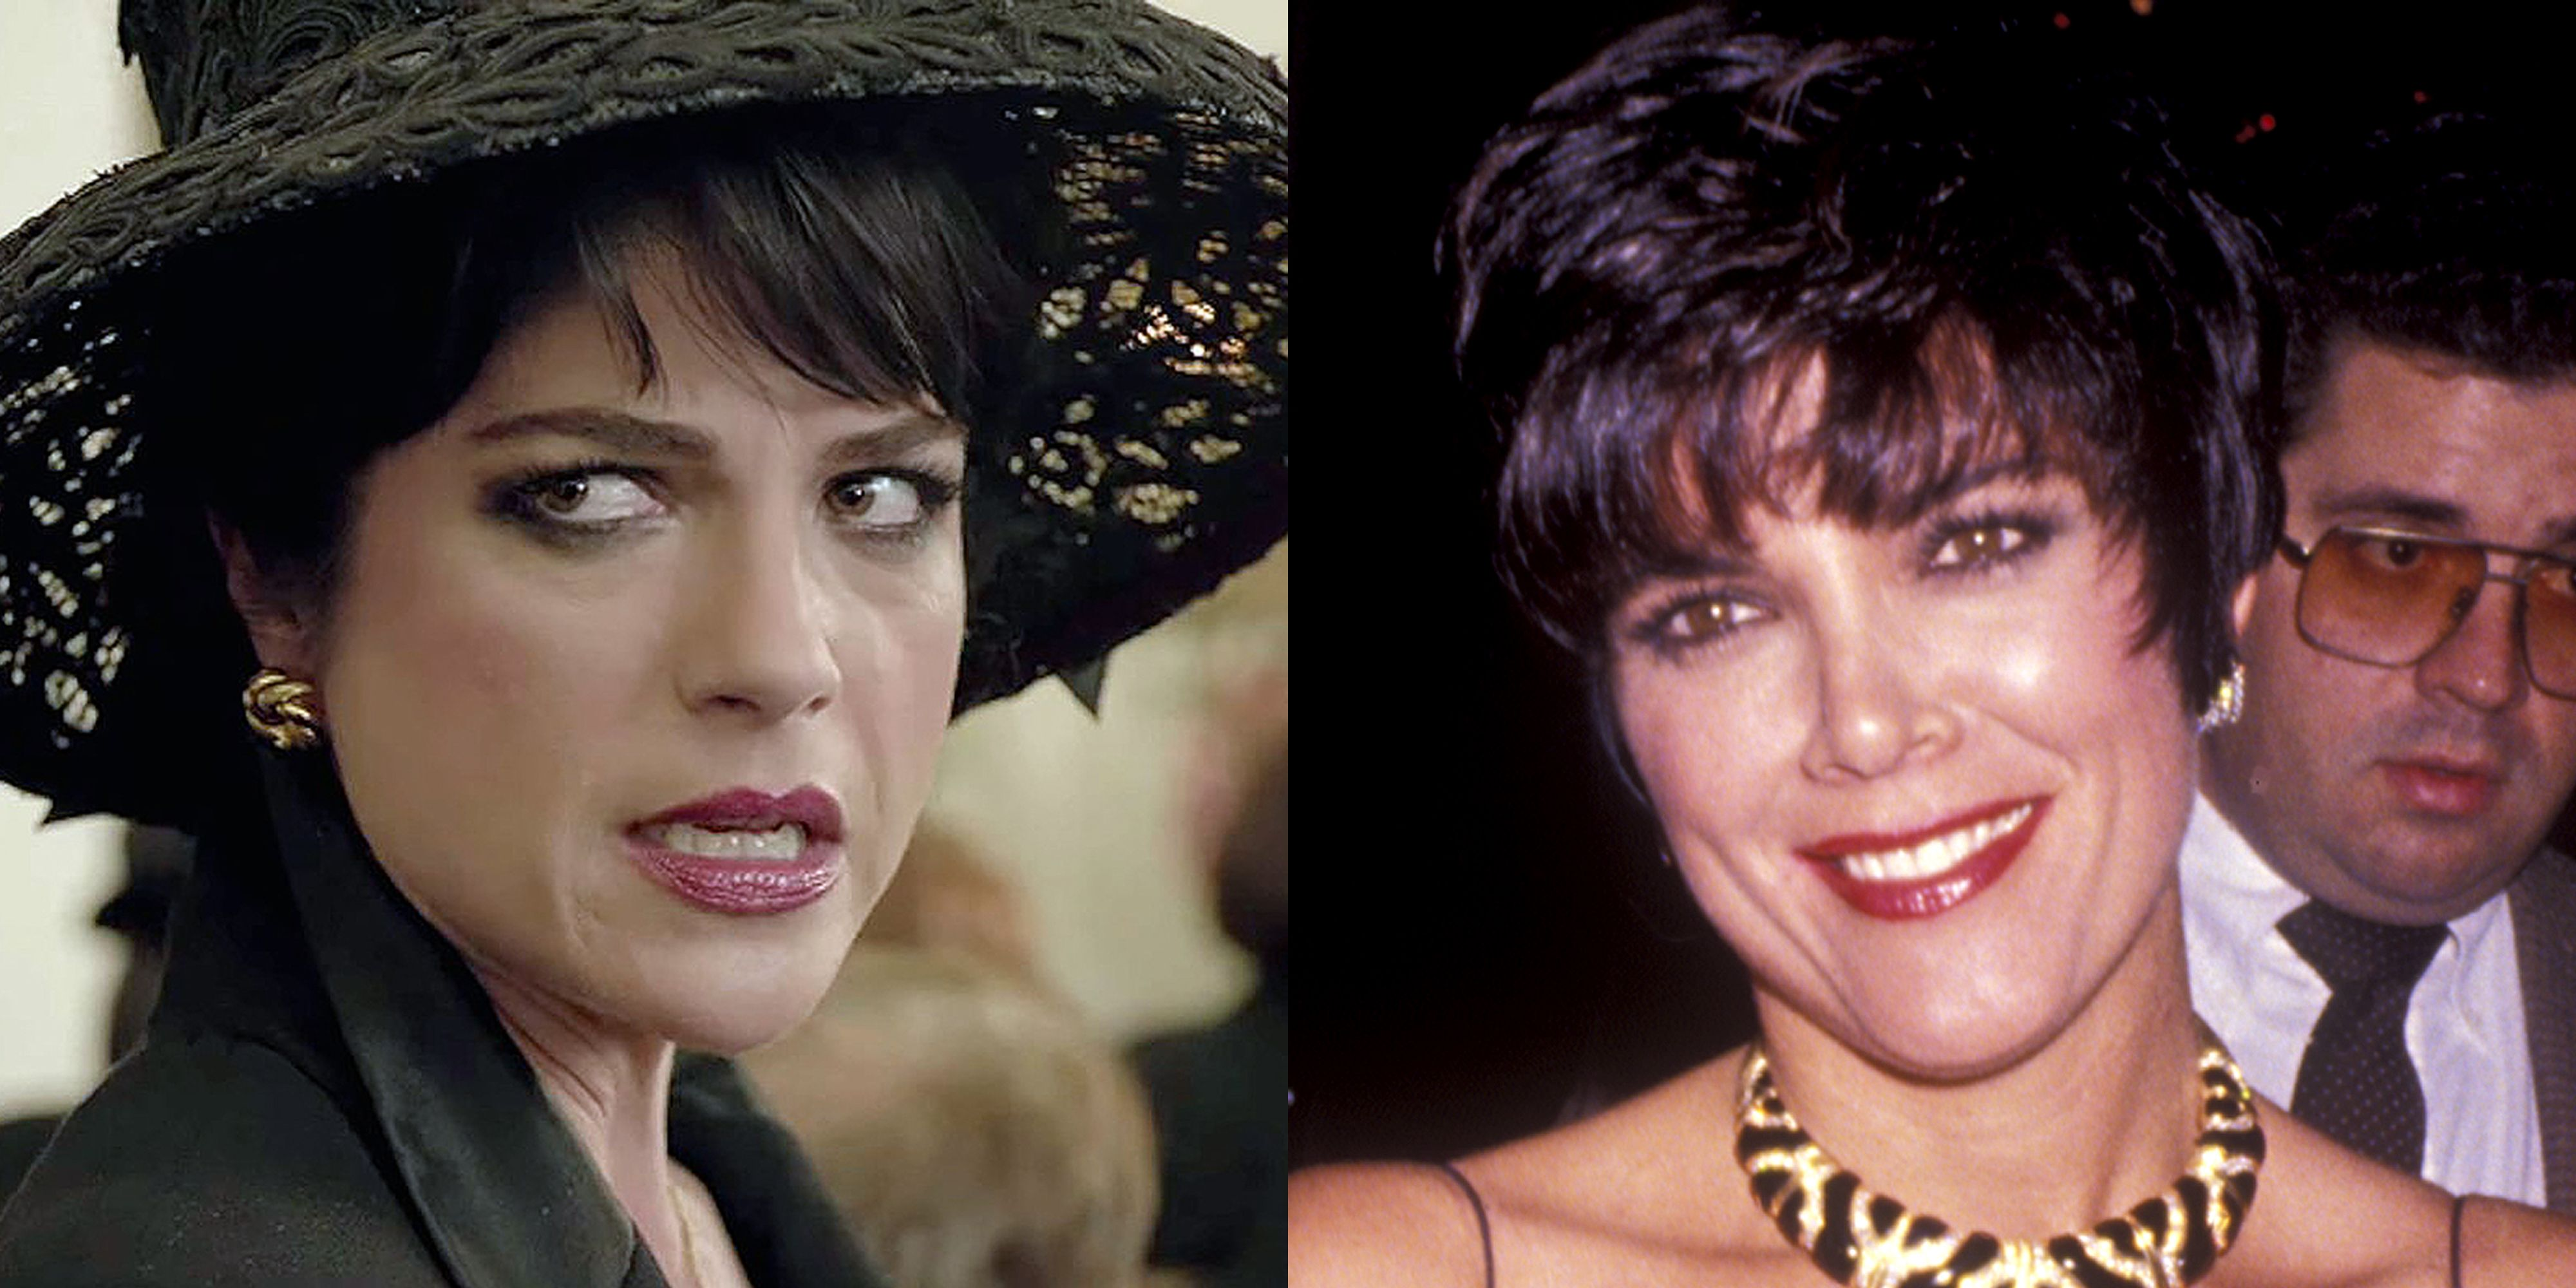 """<p>Blair <a href=""""http://www.marieclaire.com/celebrity/news/a17284/selma-blair-kris-jenner-american-crime-trailer/"""" target=""""_blank"""" data-tracking-id=""""recirc-text-link"""">played Jenner</a> as her pre-<em data-redactor-tag=""""em"""">Keeping Up with the Kardashians </em>self in <em data-redactor-tag=""""em"""">The People v. O. J. Simpson: American Crime Story</em>. <span class=""""redactor-invisible-space"""" data-verified=""""redactor"""" data-redactor-tag=""""span"""" data-redactor-class=""""redactor-invisible-space""""></span></p>"""